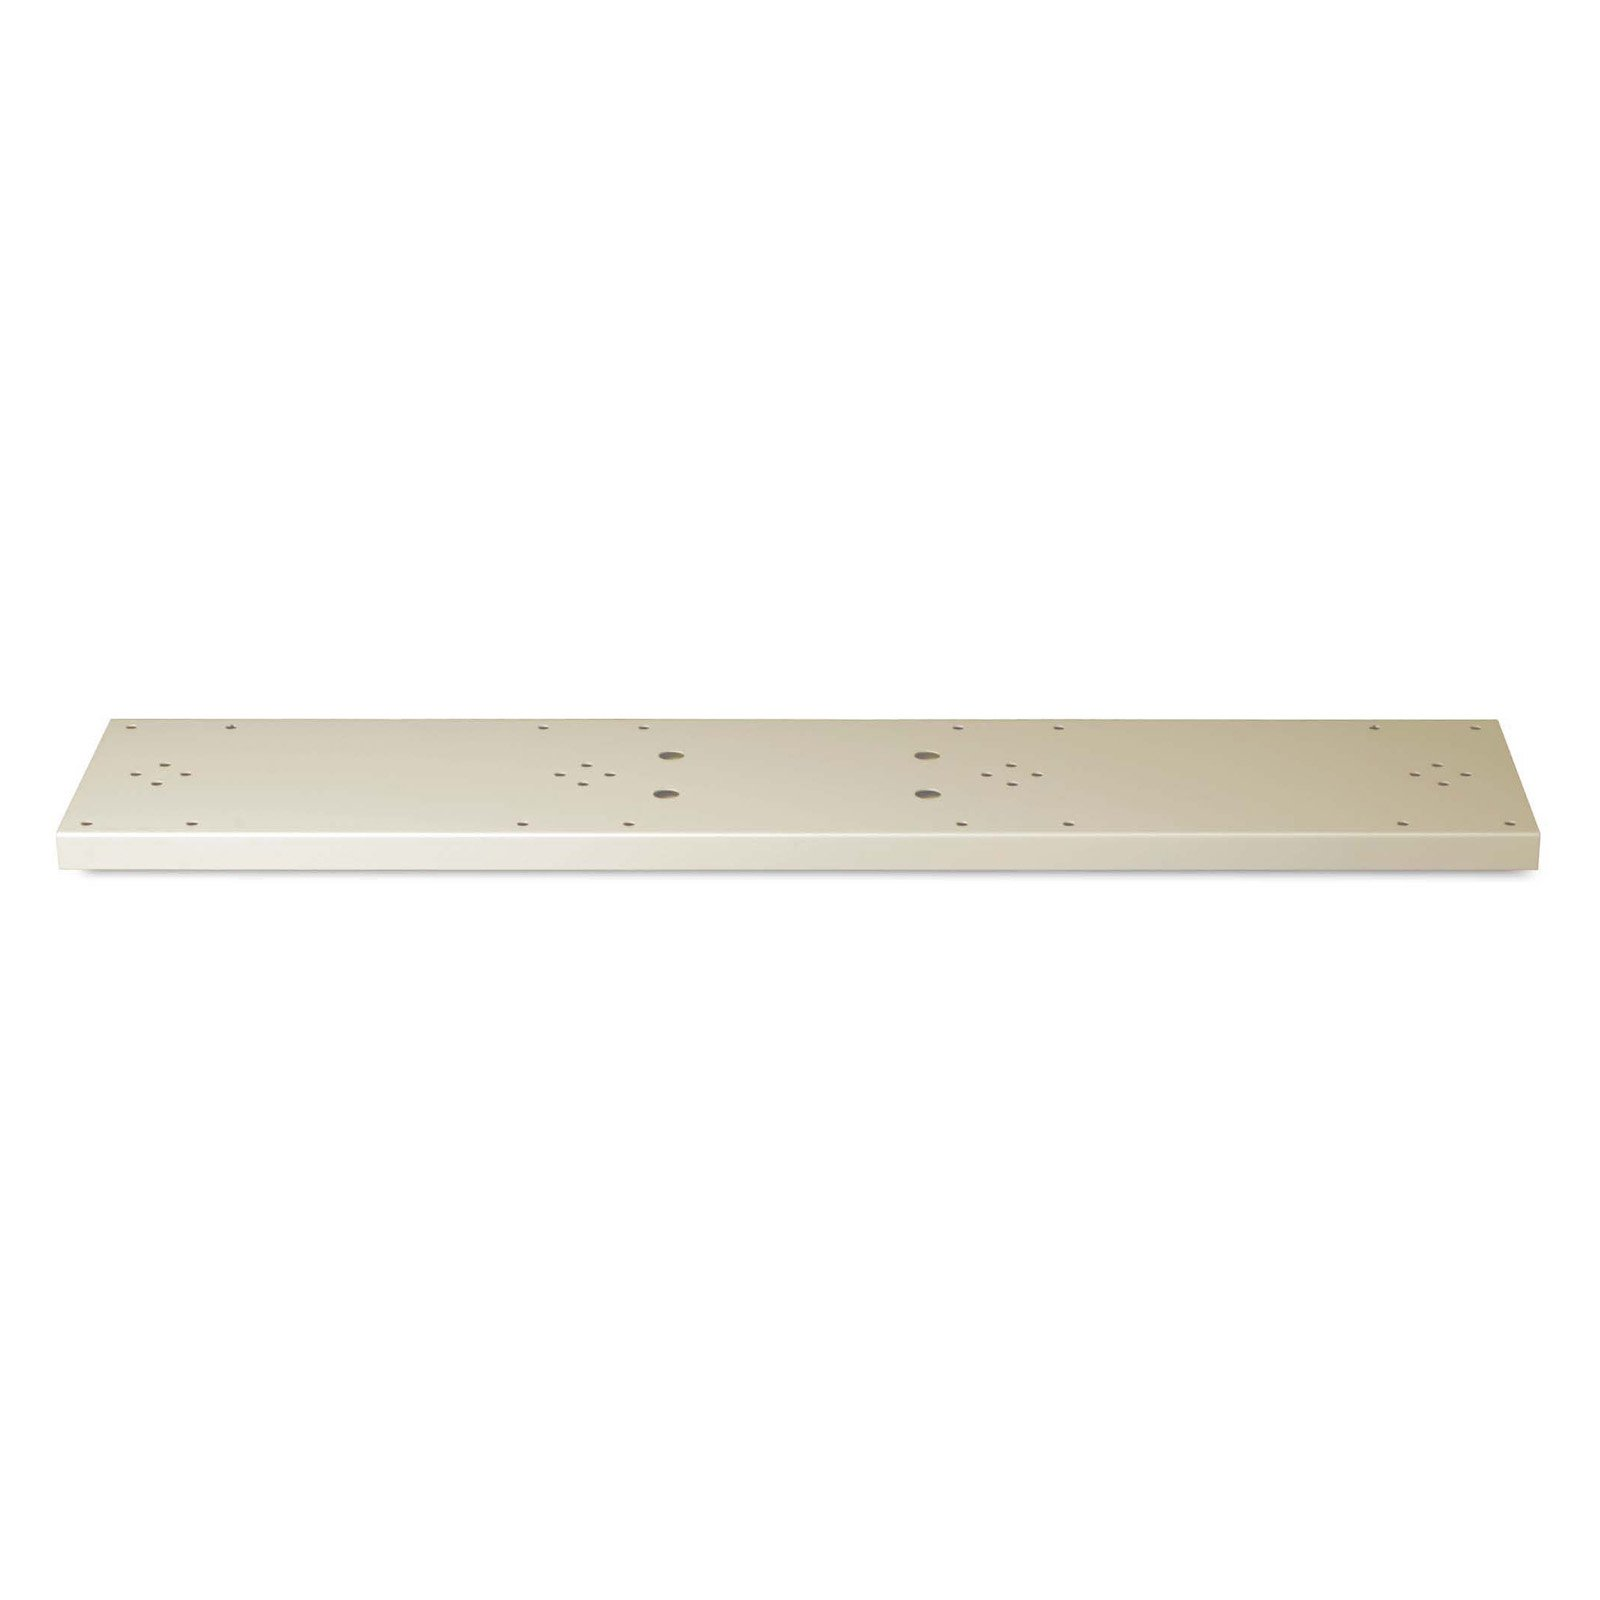 Architectural Mailboxes Quad Spreader Plate, Bronze